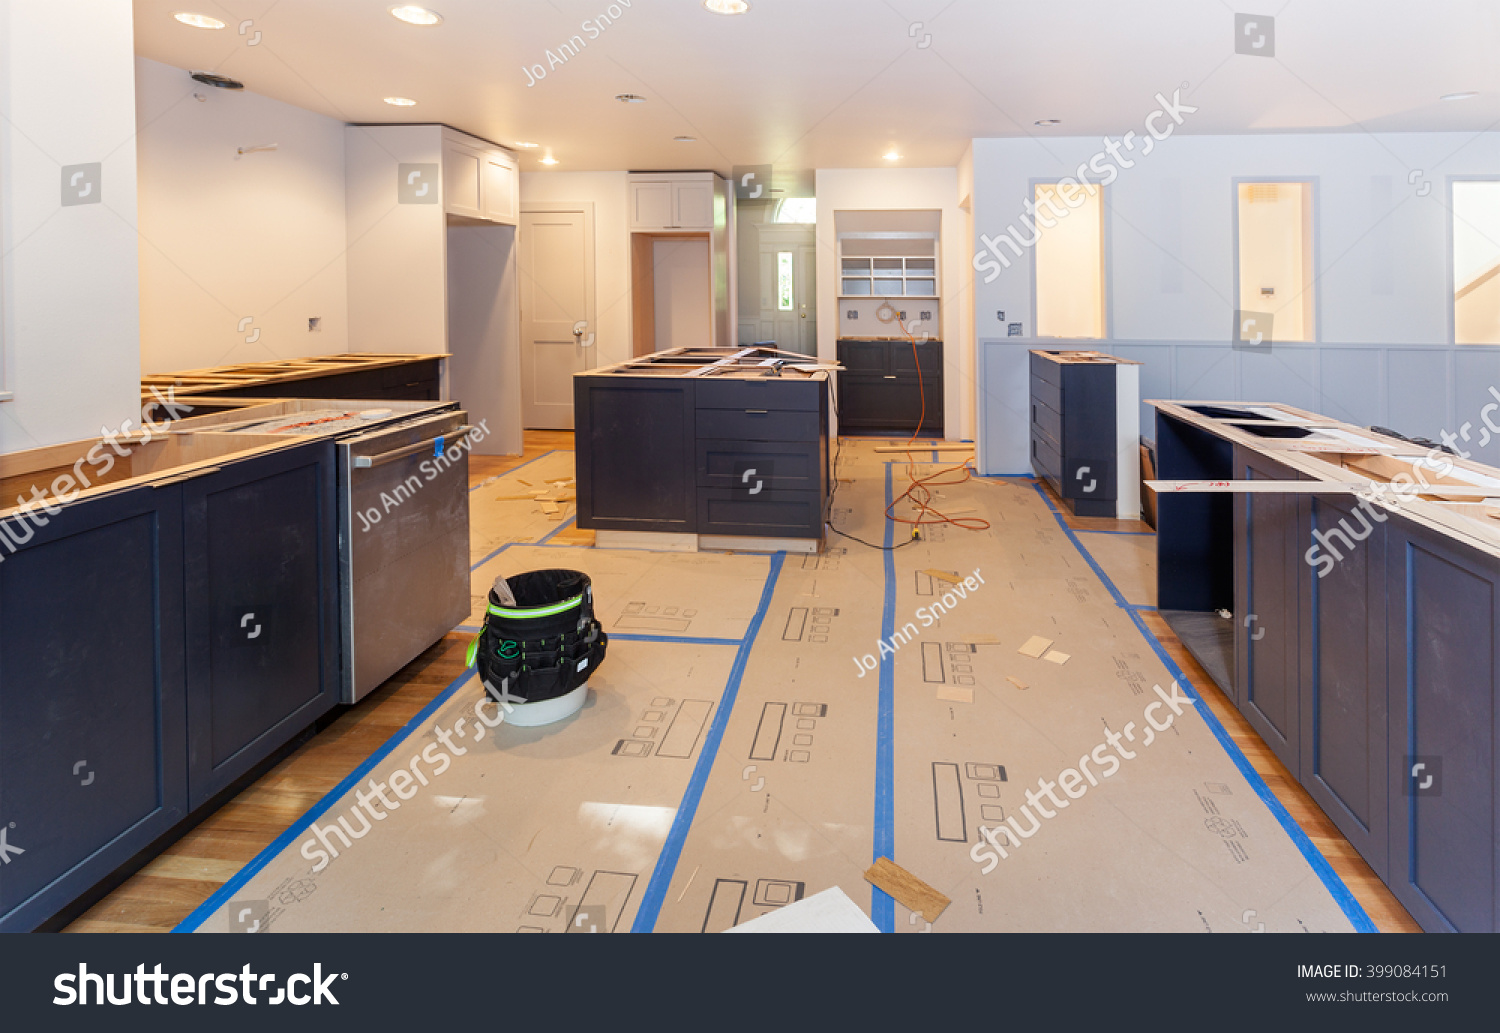 Balsa wood template arranged glued making stock photo for Template for granite countertops